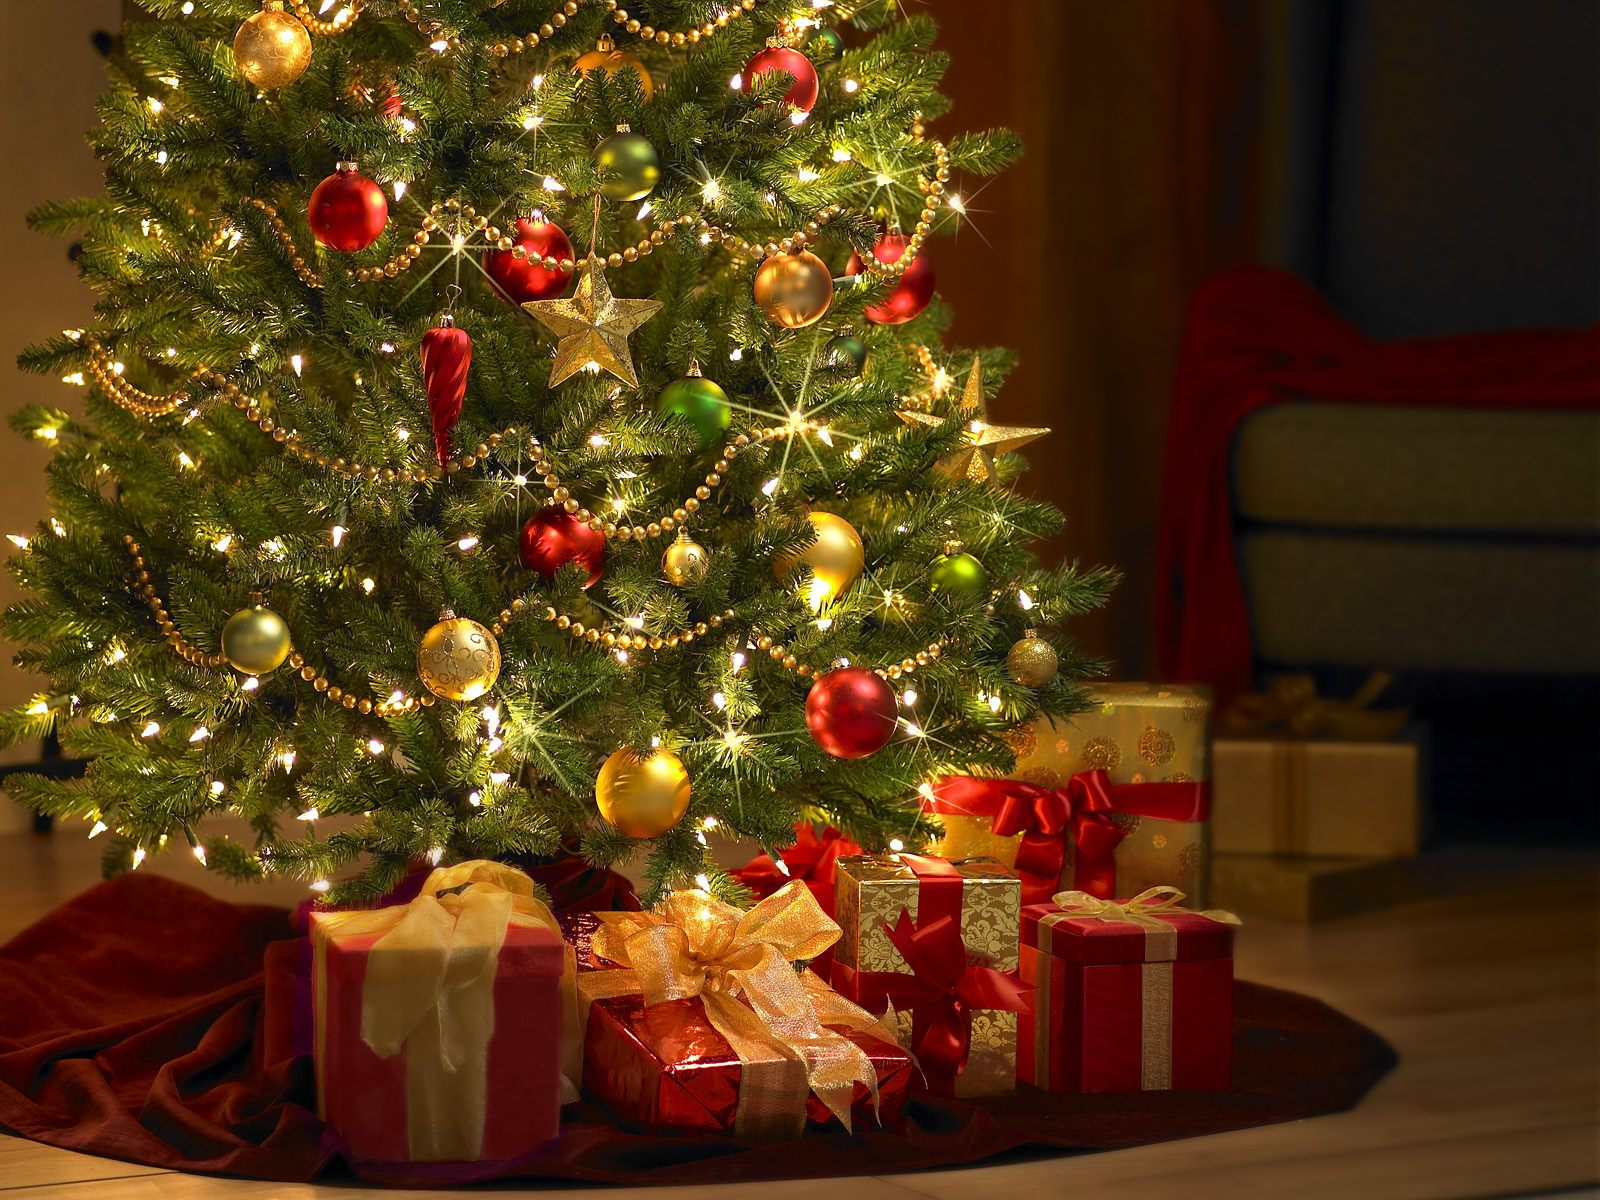 ... _Christmas_Wallpapers_Desktop_Backgrounds_Christmas_Picture_Cards (1